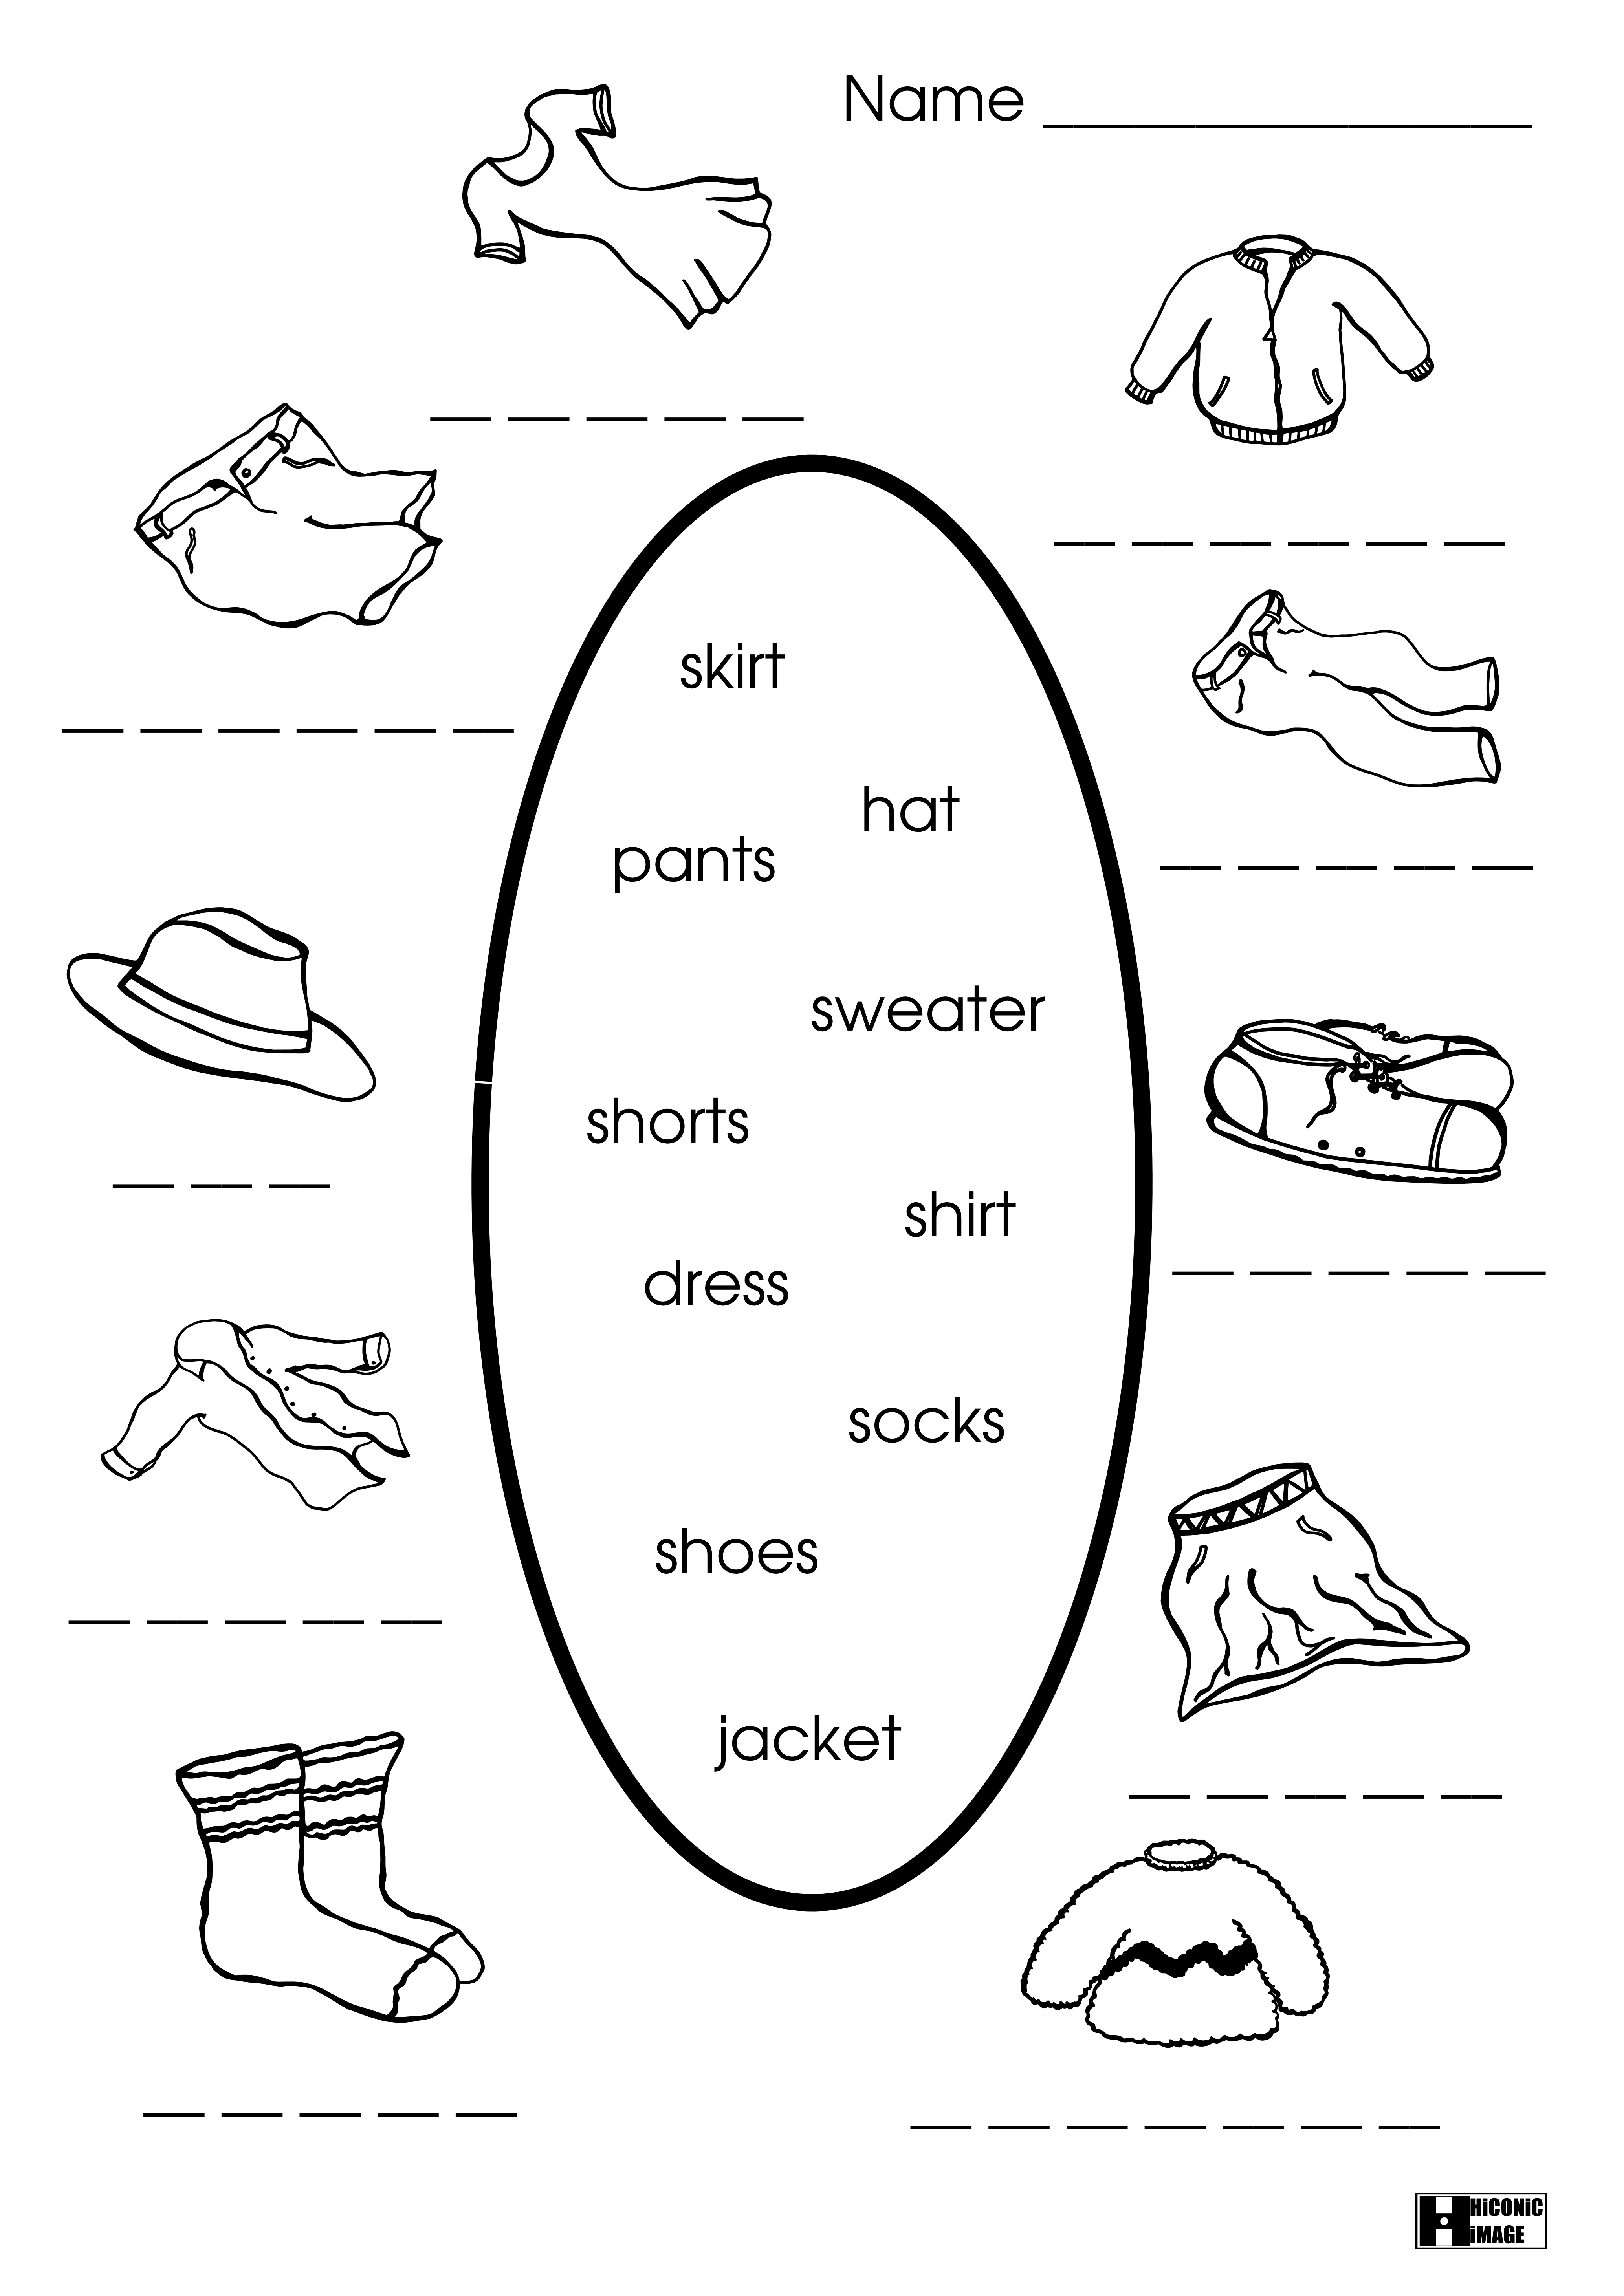 6 Images of Clothes Free Printable Worksheets